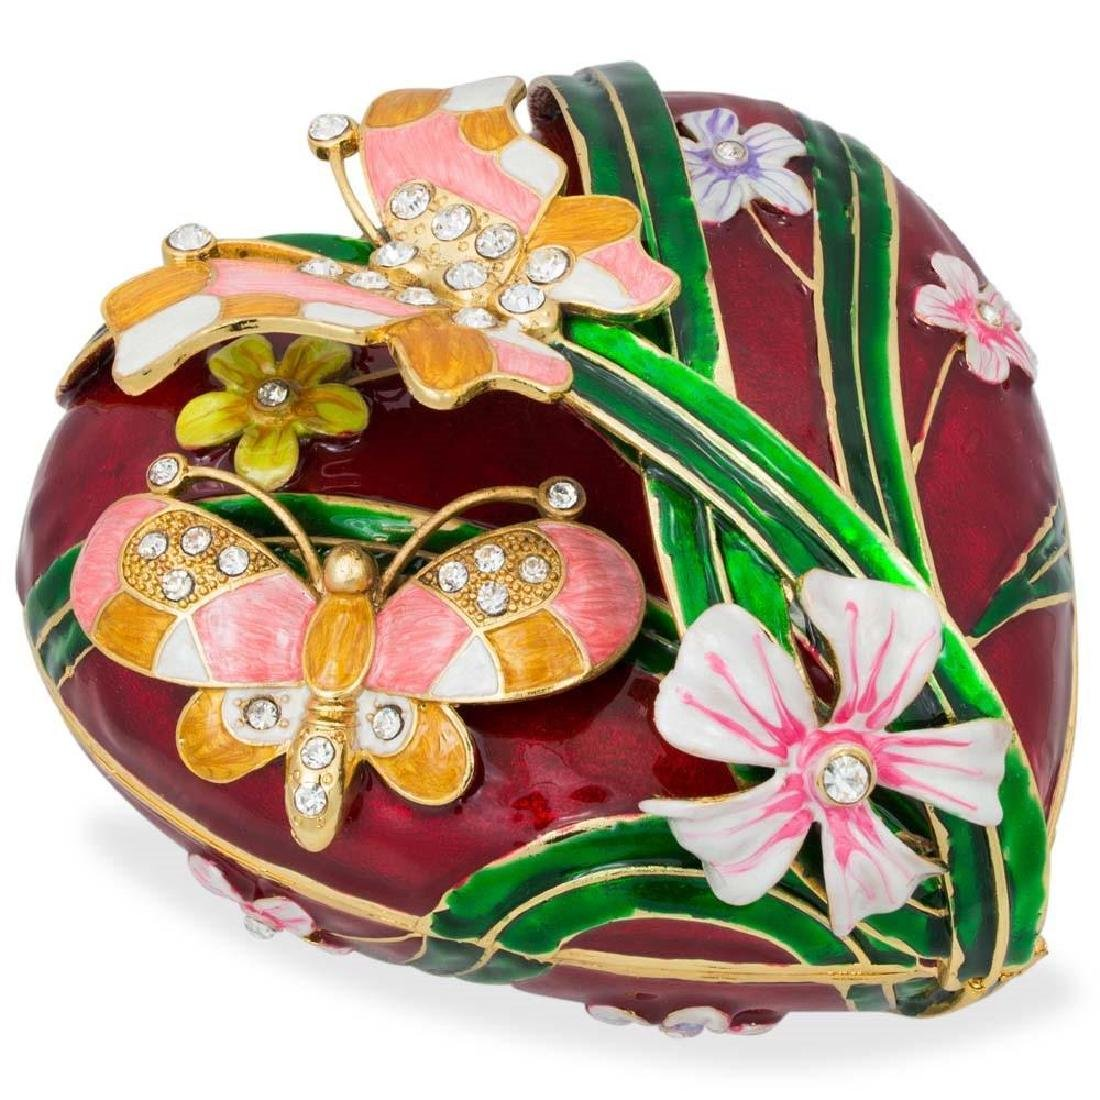 "Faberge Inspired 6.5"" Valentine's Love Heart with"